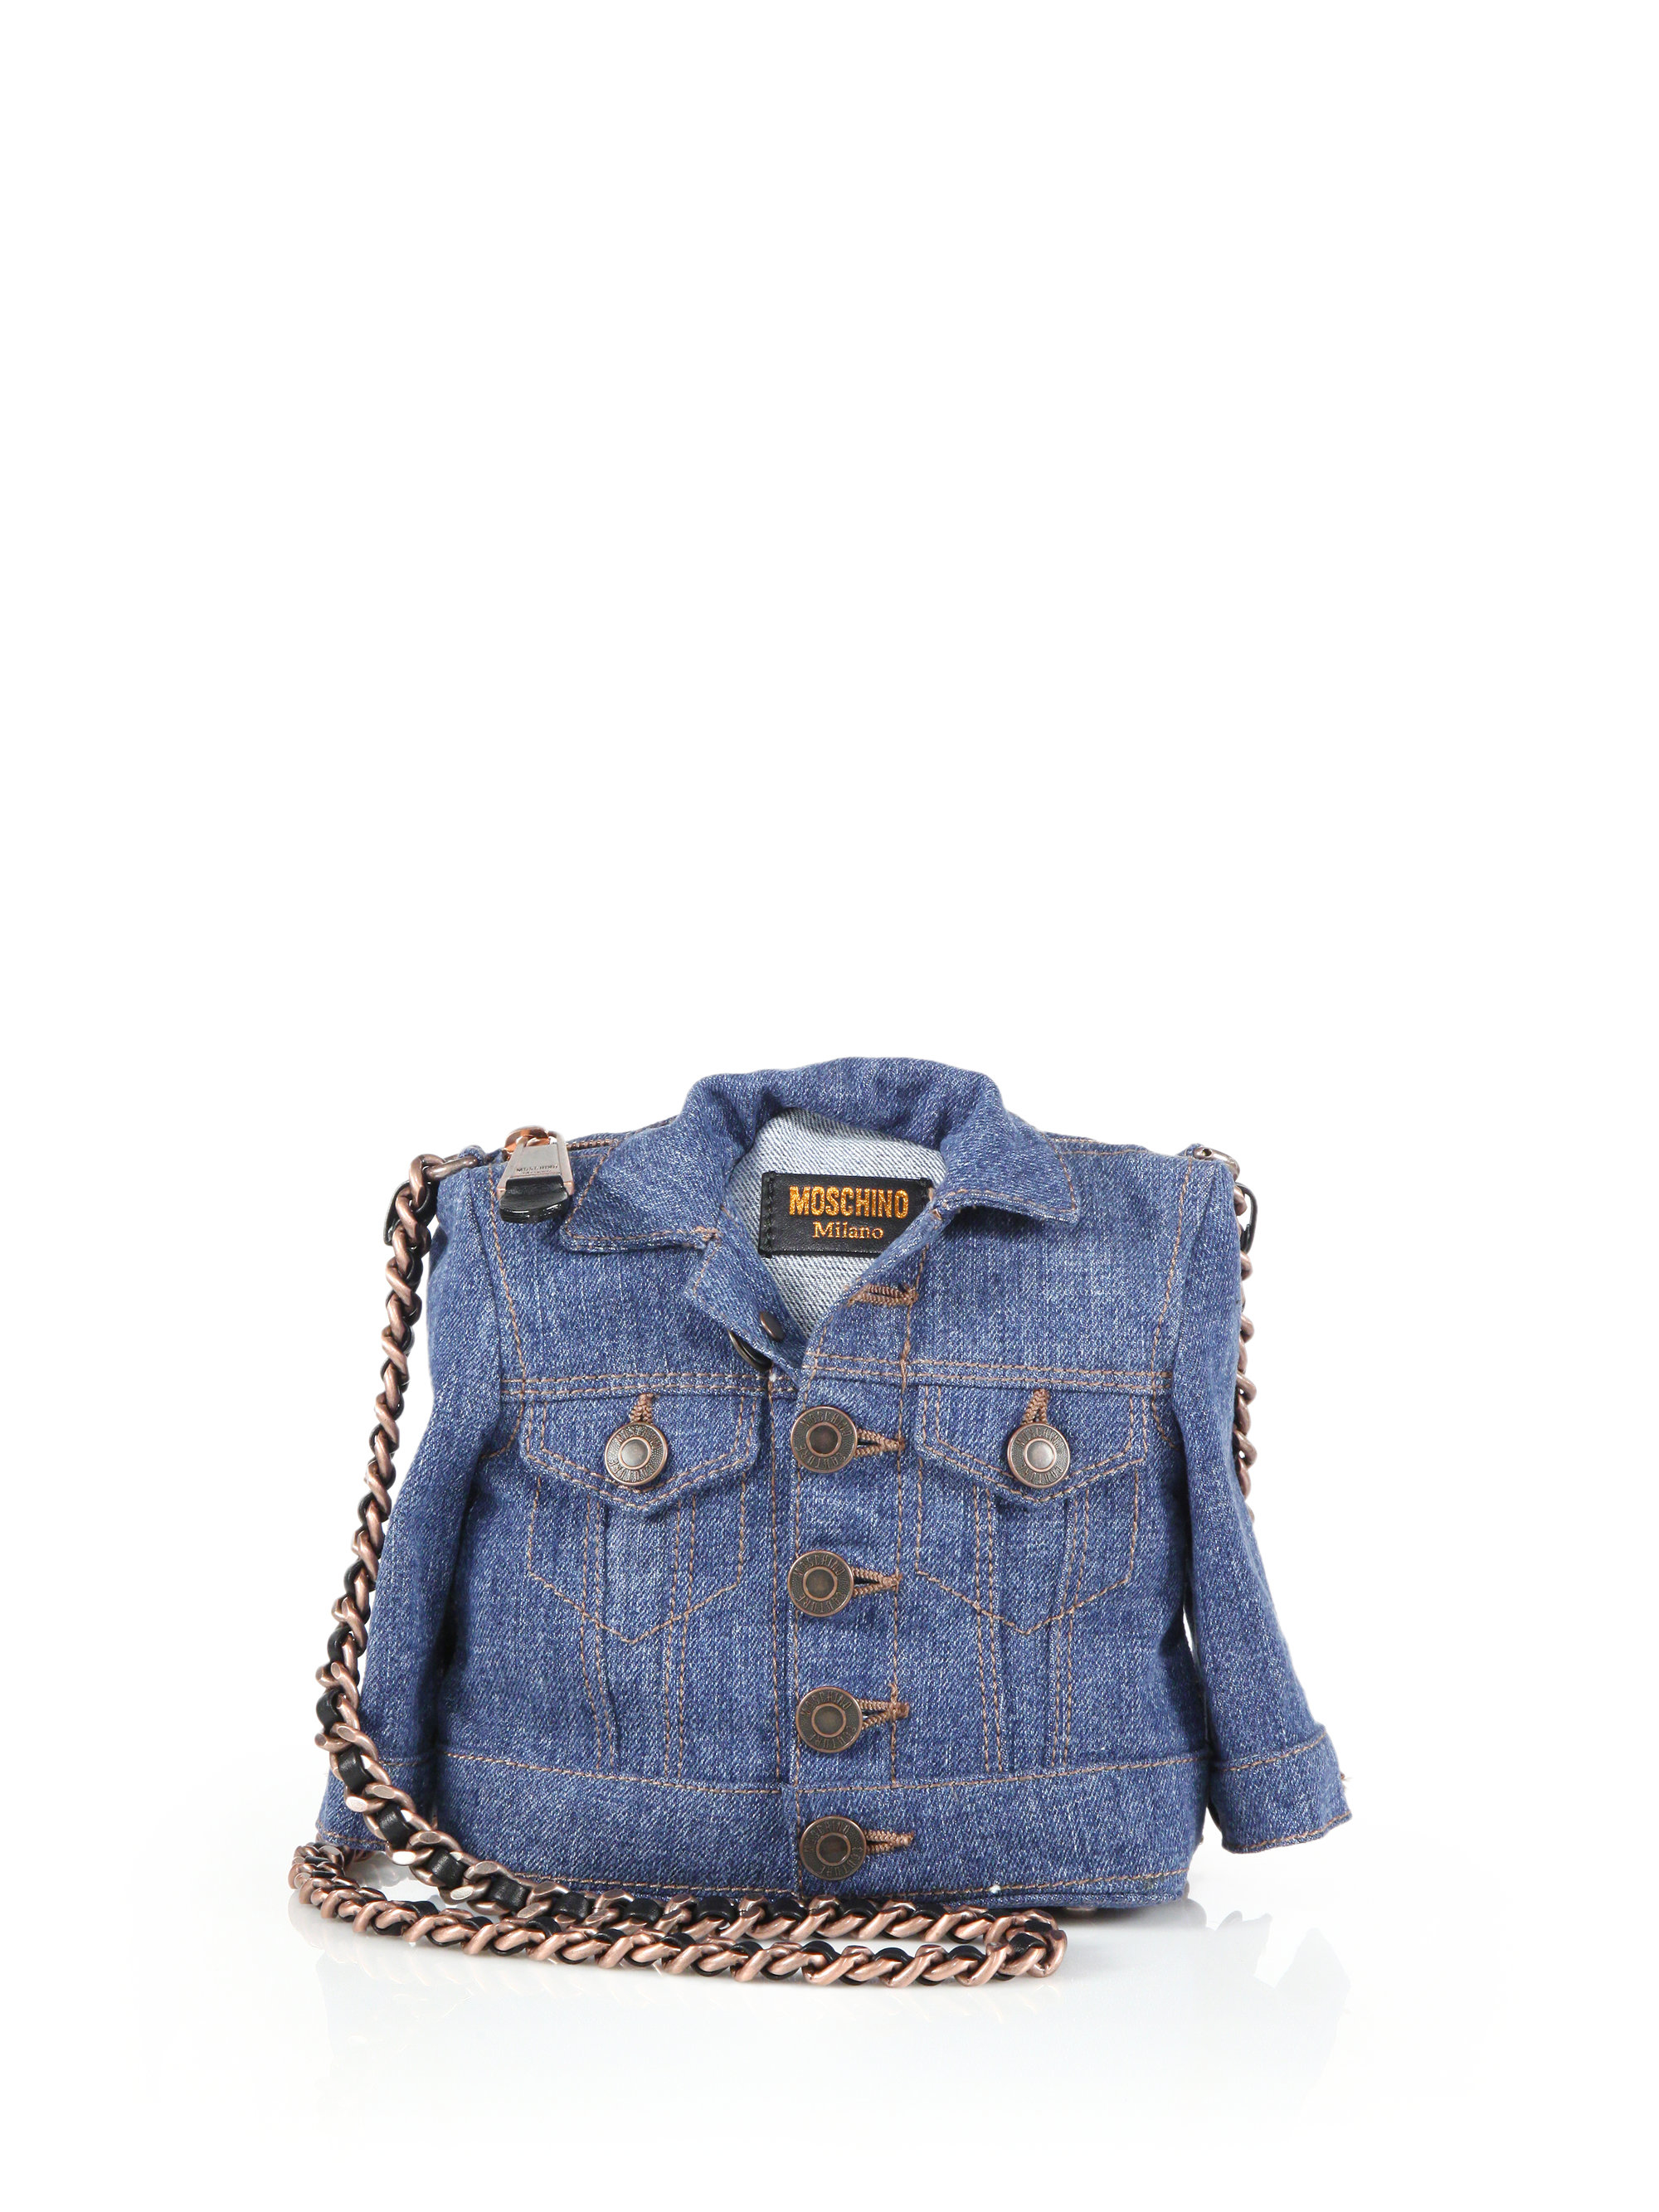 290f5c3765ac4 Moschino Denim Jacket Crossbody Bag in Blue - Lyst